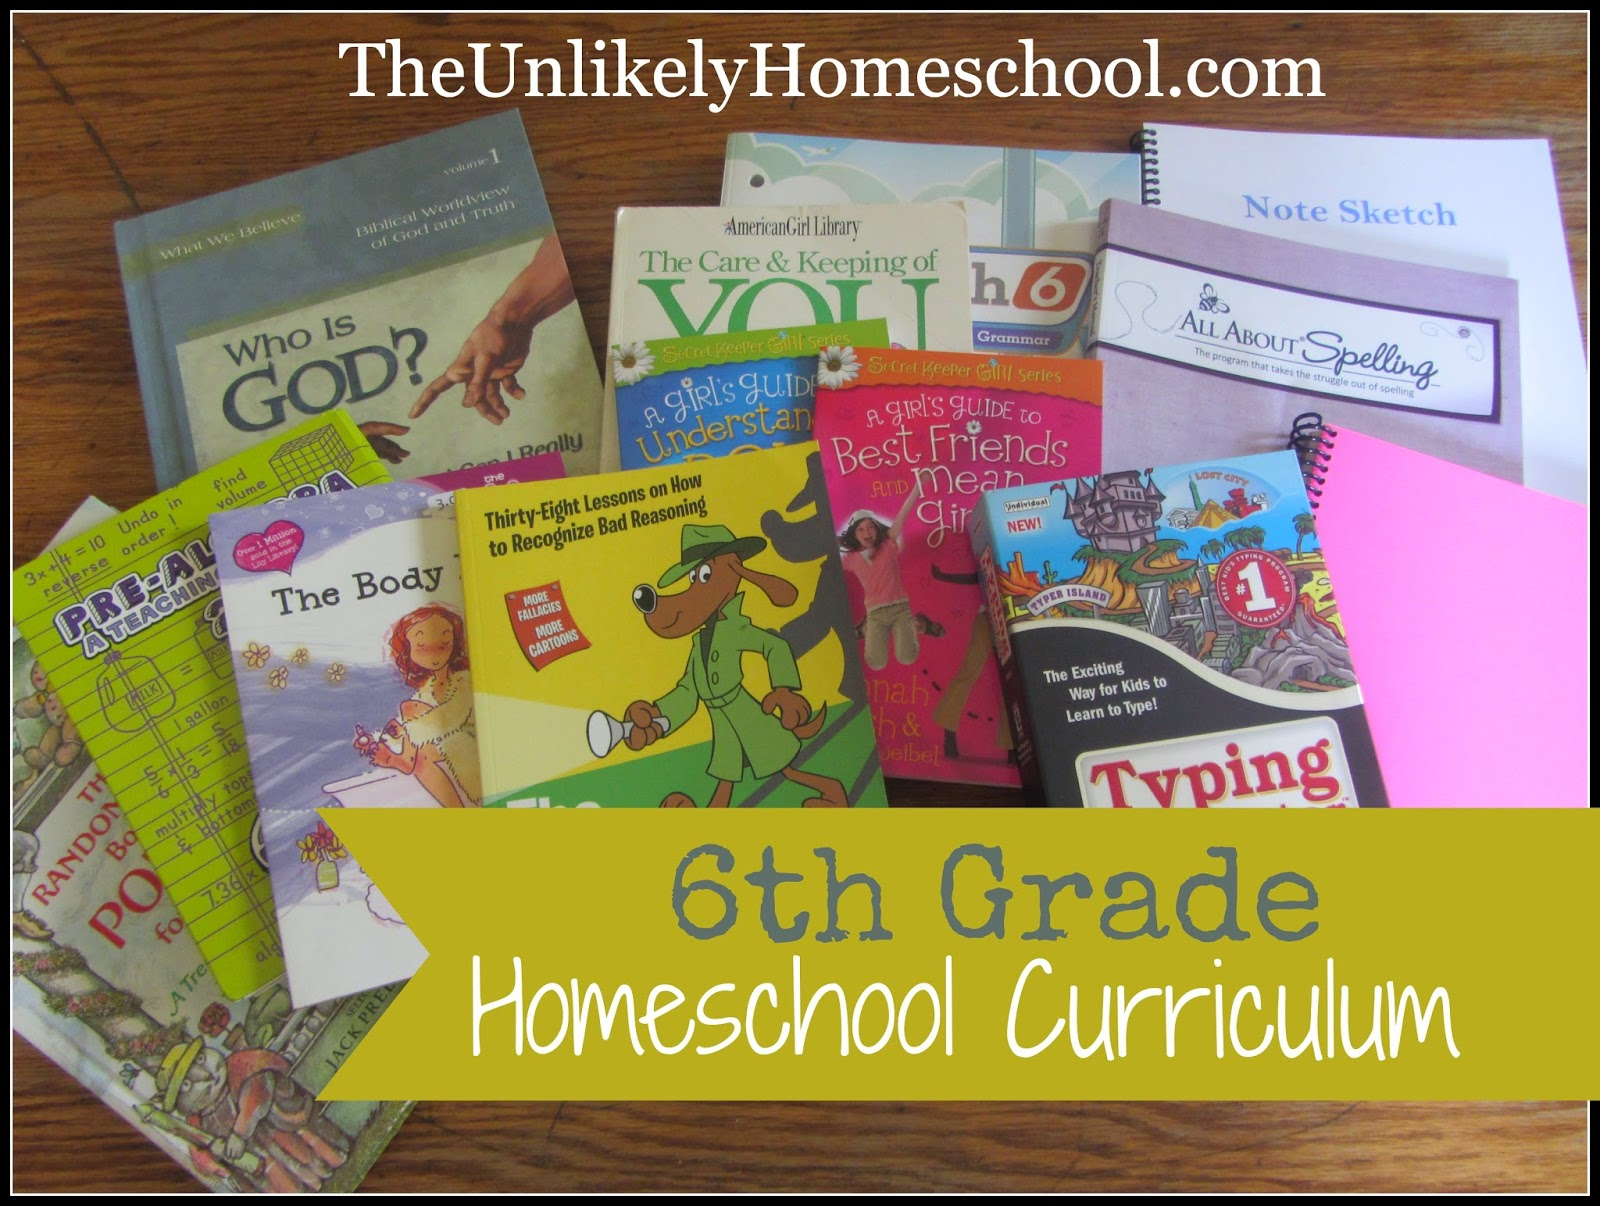 6th Grade Homeschool Curriculum 2014-2015 {The Unlikely Homeschool}